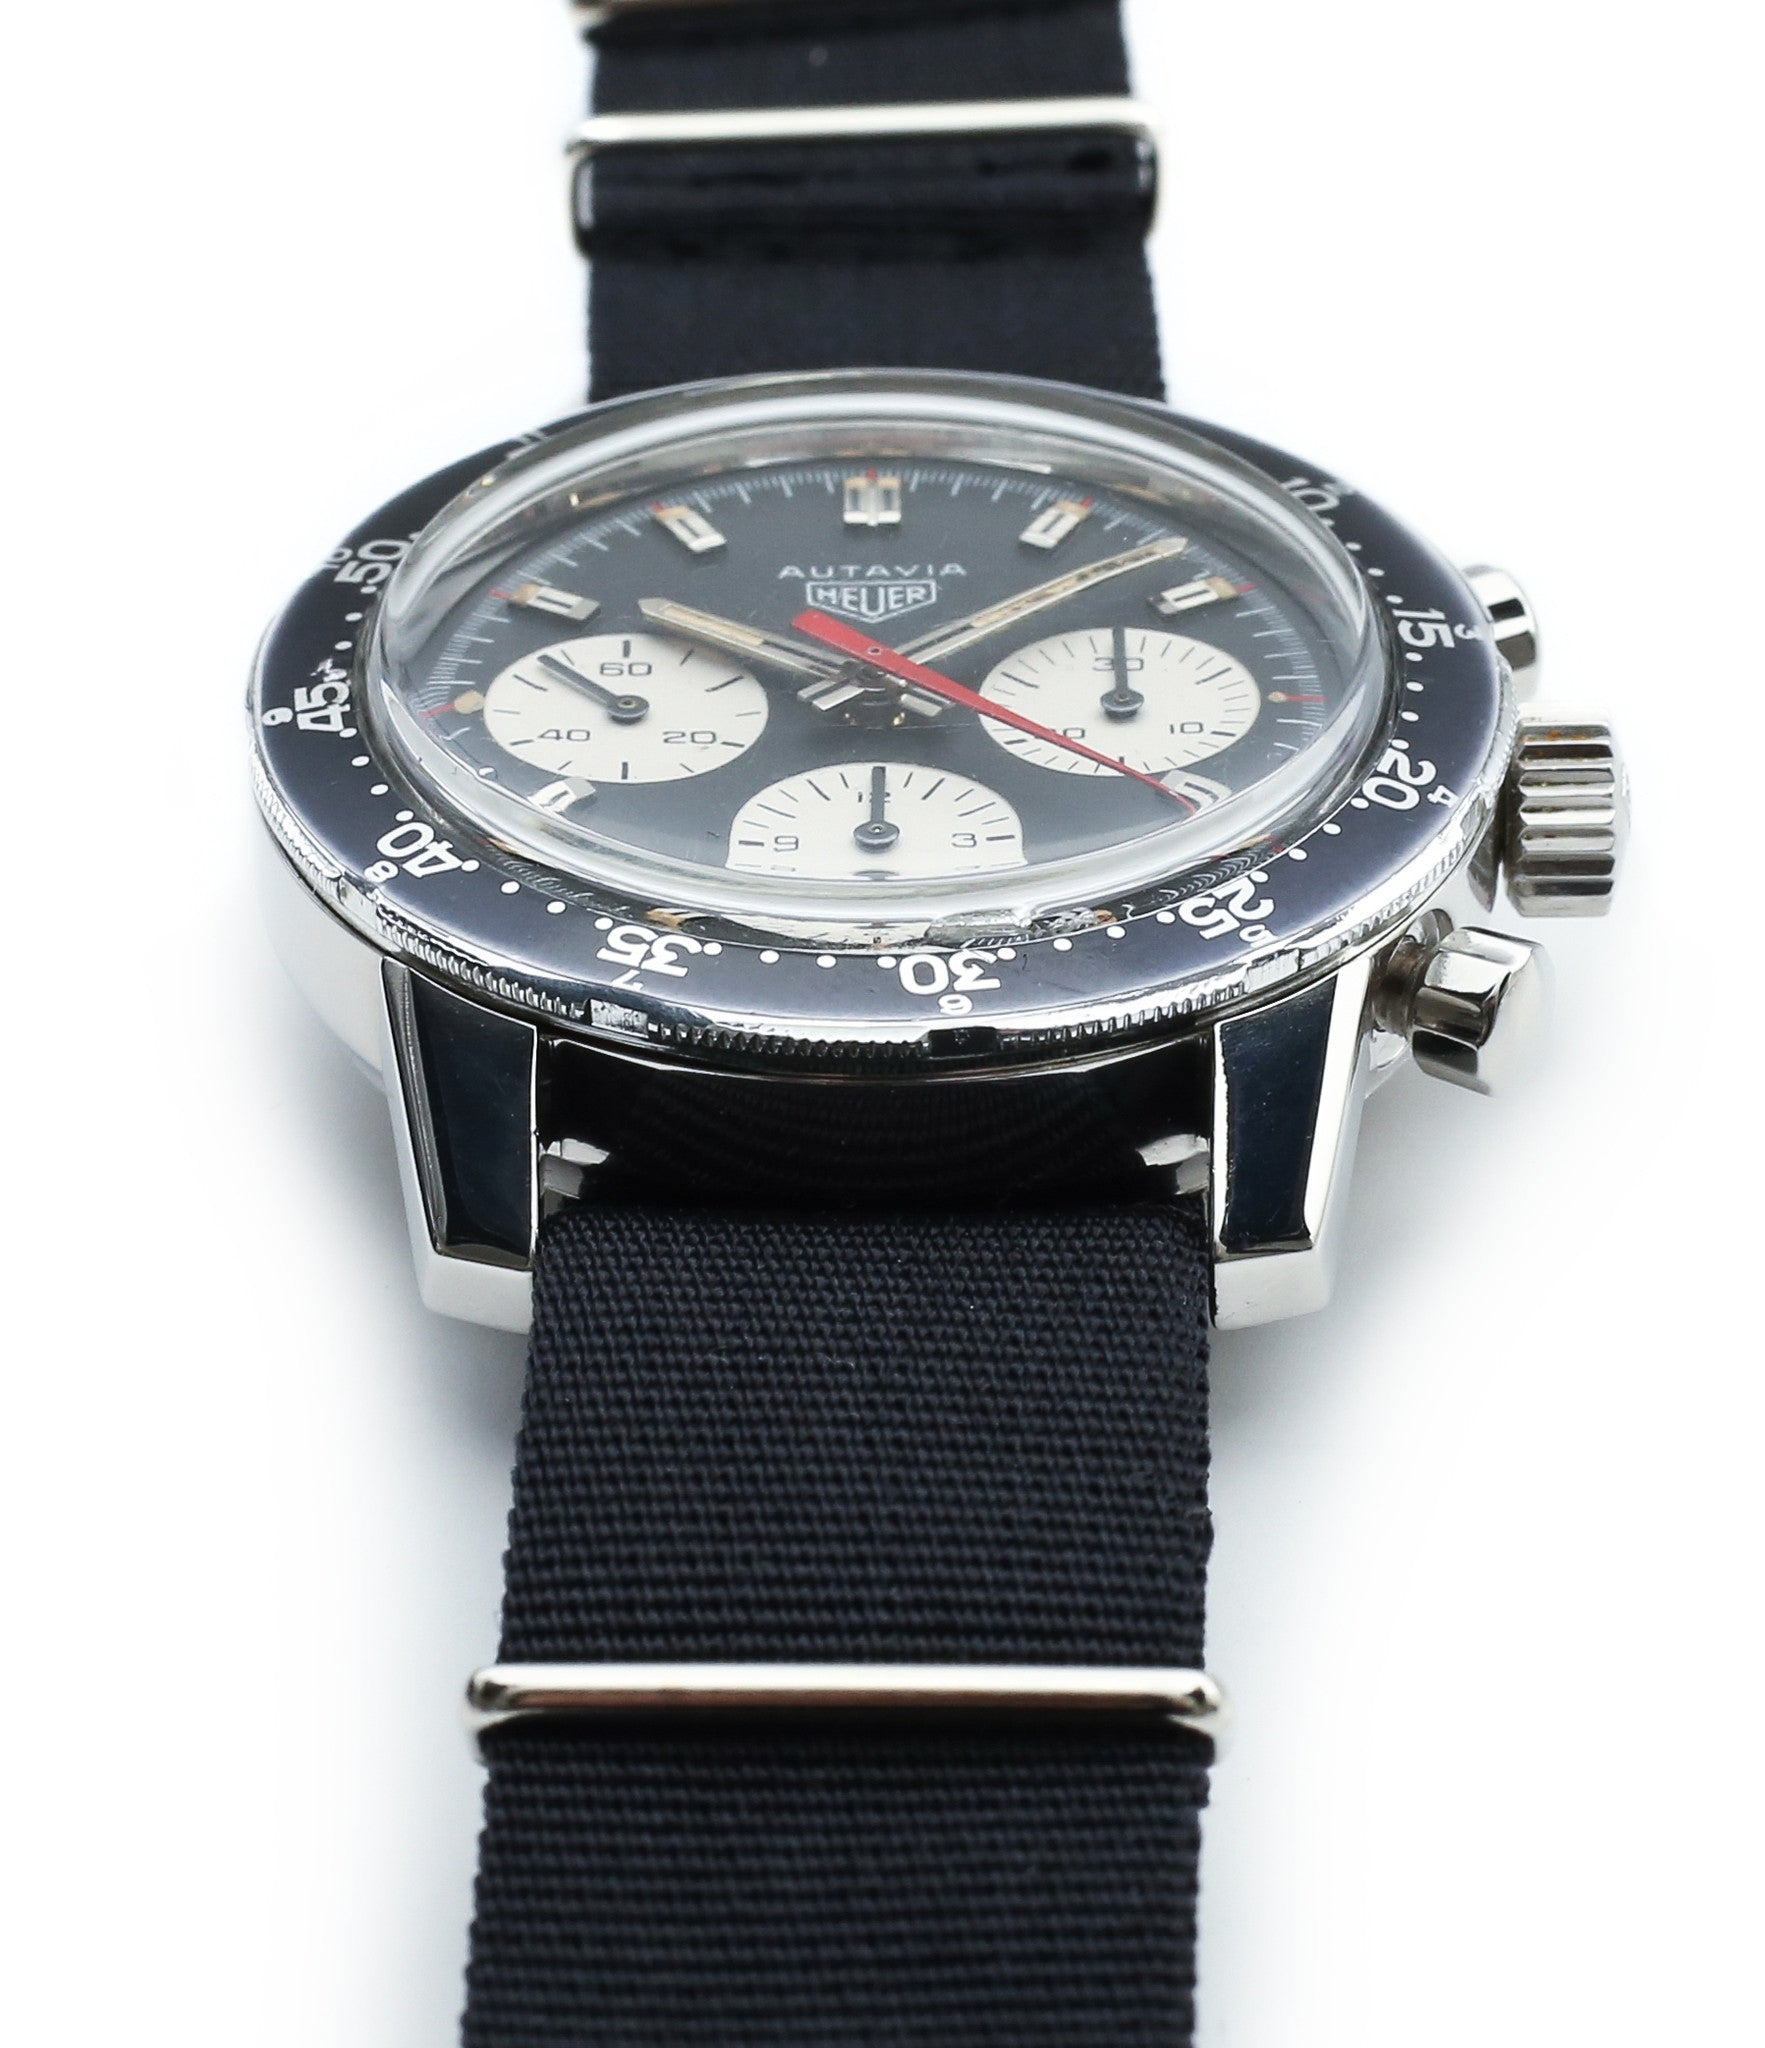 case buy vintage Heuer 2446C red hand chronograph steel watch online at WATCH XCHANGE London unrestored dial